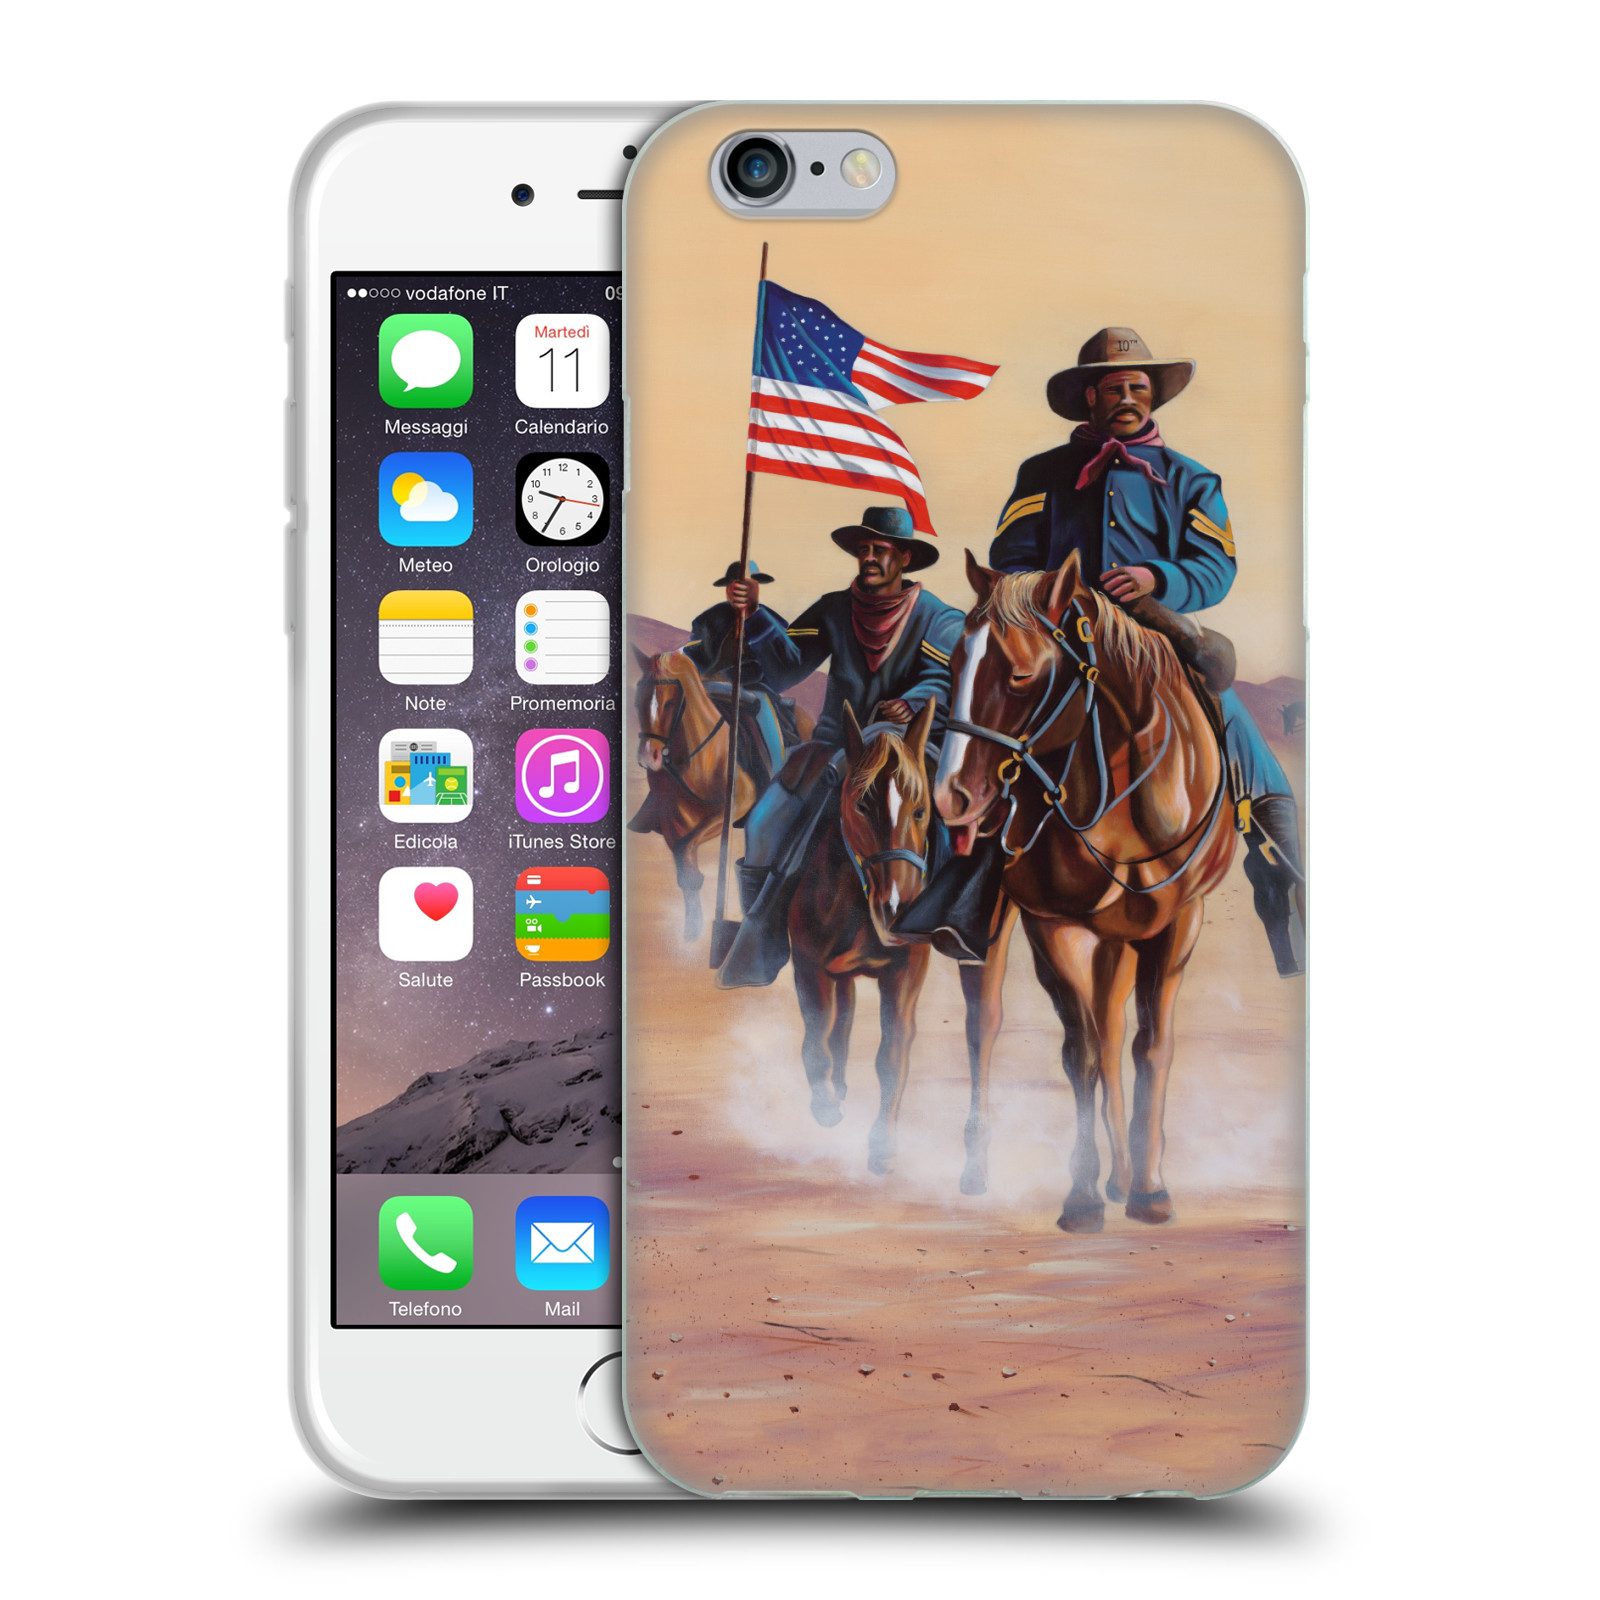 OFFICIAL-GENO-PEOPLES-ART-LIFE-SOFT-GEL-CASE-FOR-APPLE-iPHONE-PHONES